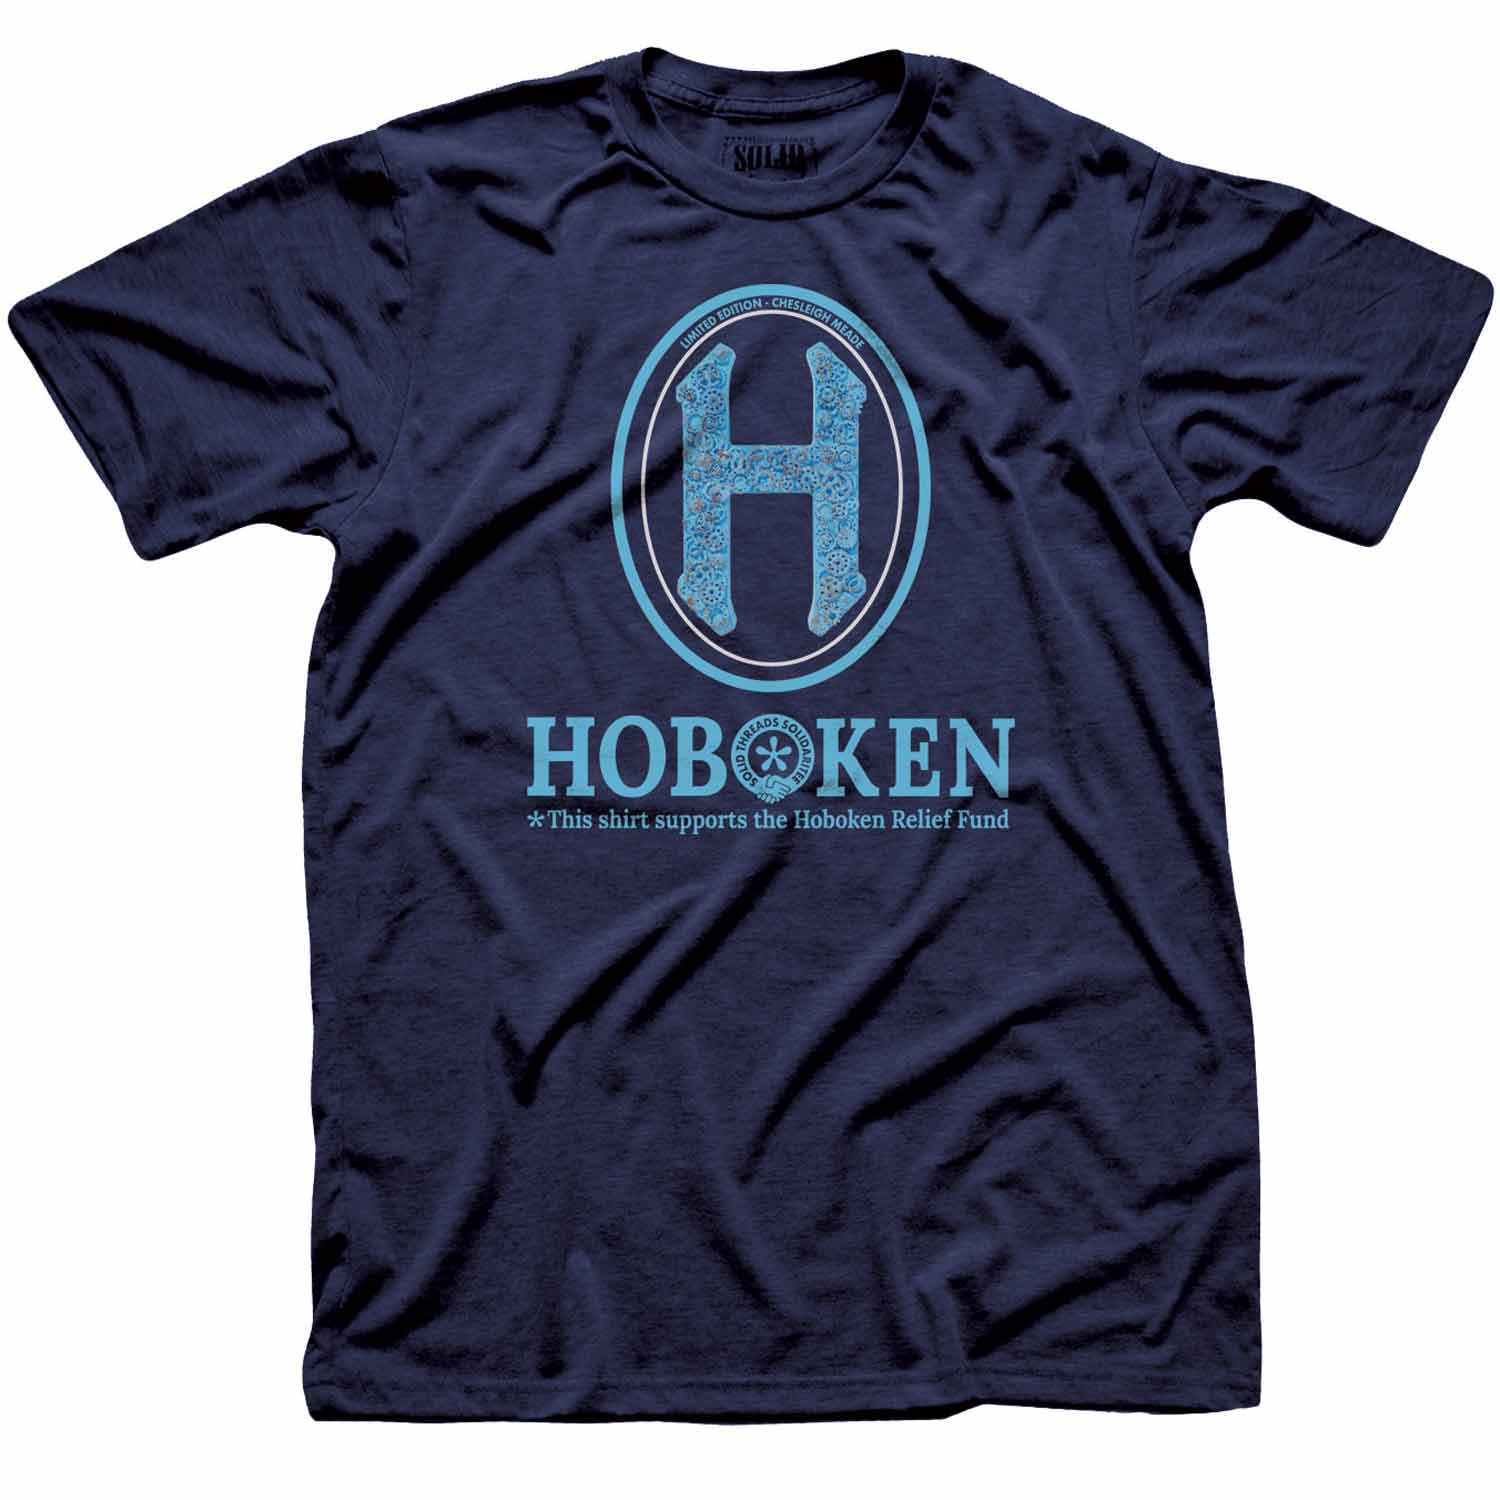 "Men's Hoboken ""H"" Relief Fund Limited Edition scoopneck tee-shirt with cool, retro Chesleigh Meade graphic 